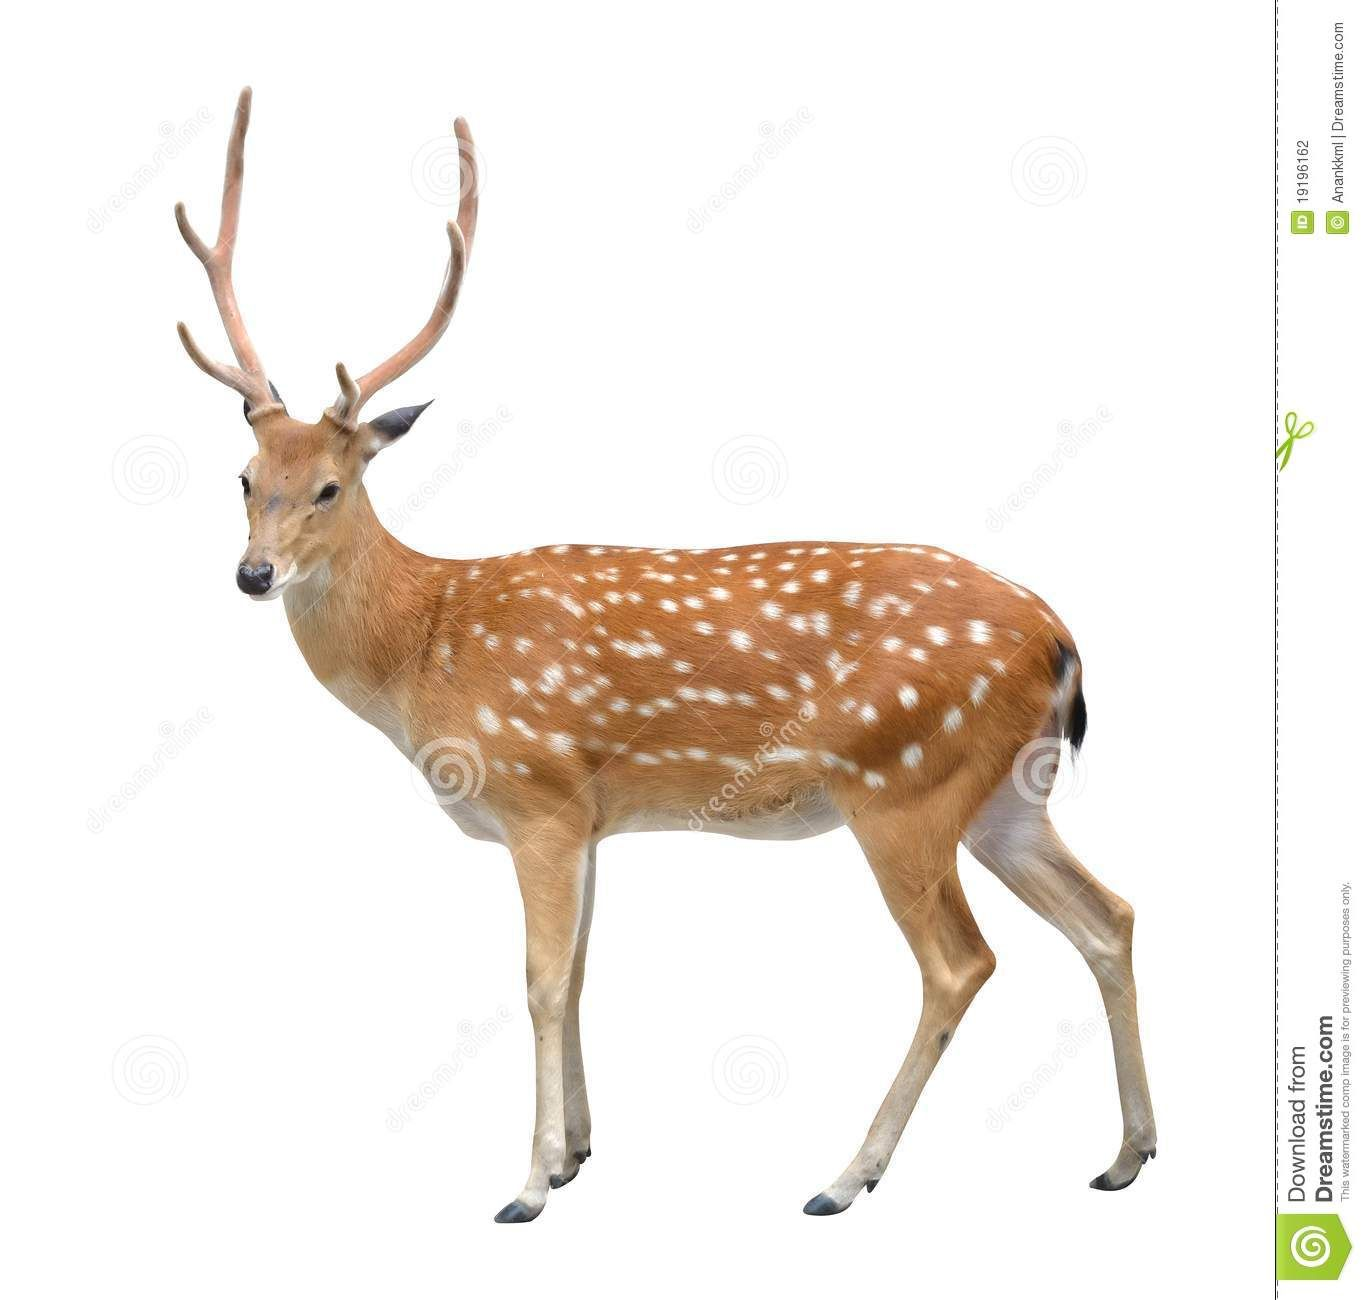 Deer google search xtra xtra pinterest cattle and animal photo about male sika deer isolated on white background 19196162 voltagebd Image collections